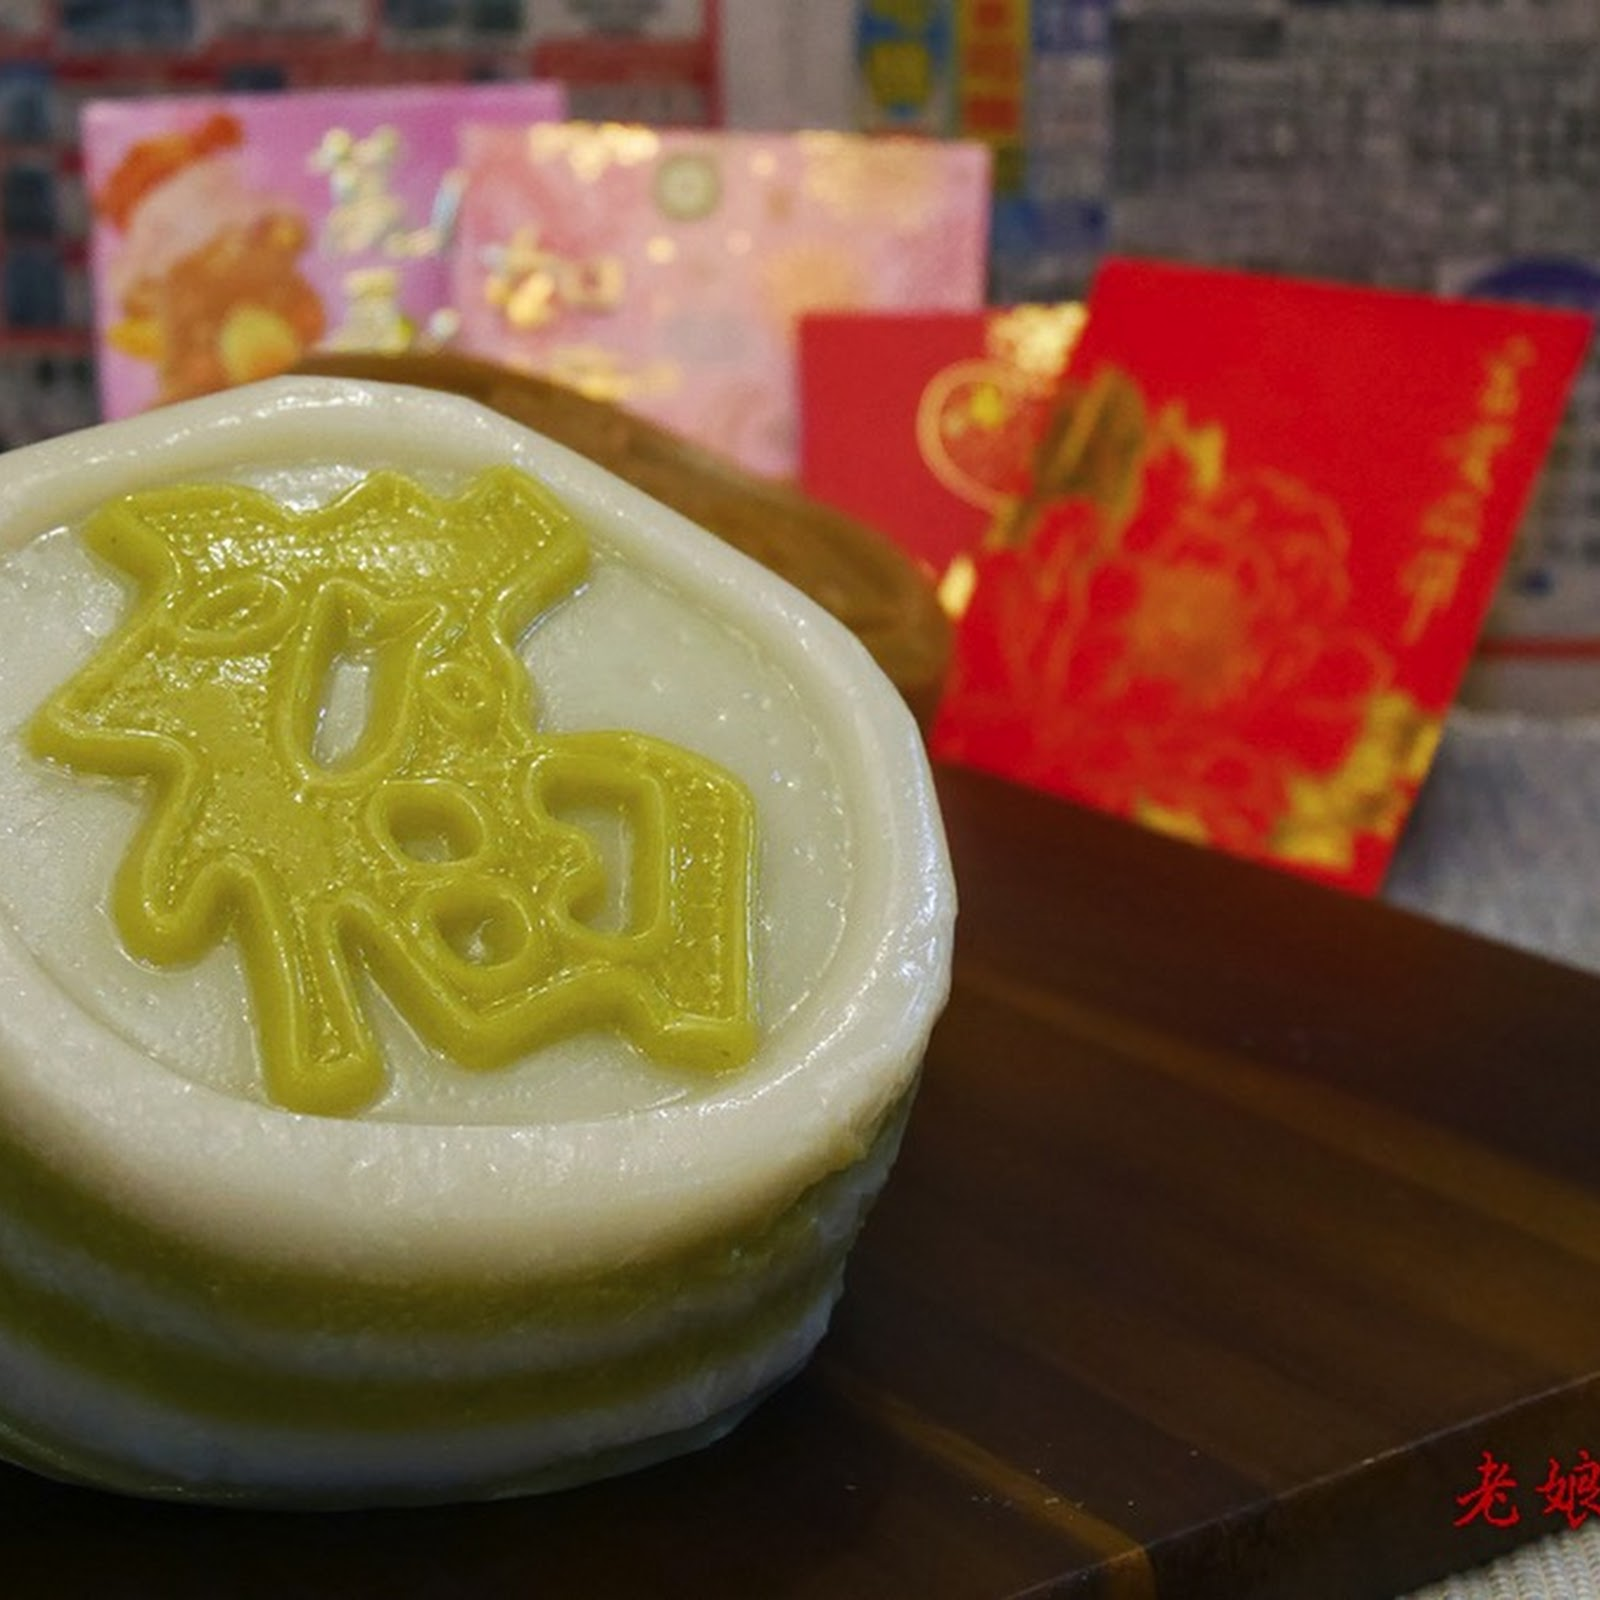 班蘭椰汁年糕 Pandan & Coconut New Year Rice Cake 【老娘的草根飯堂OldLady's Kitchen】